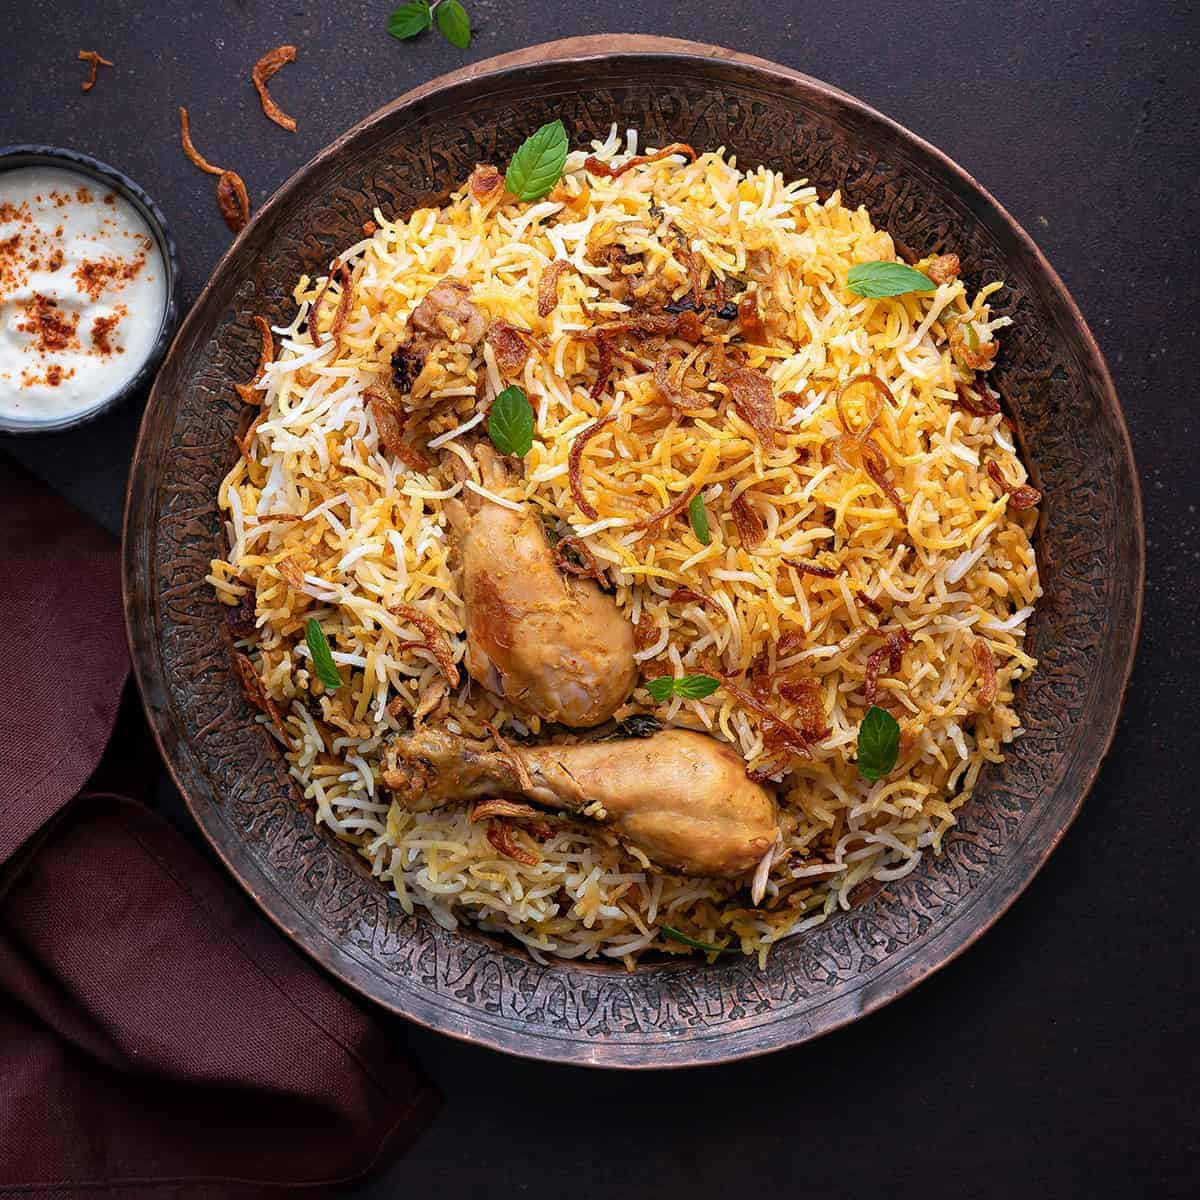 Origin of Kolkata Biryani